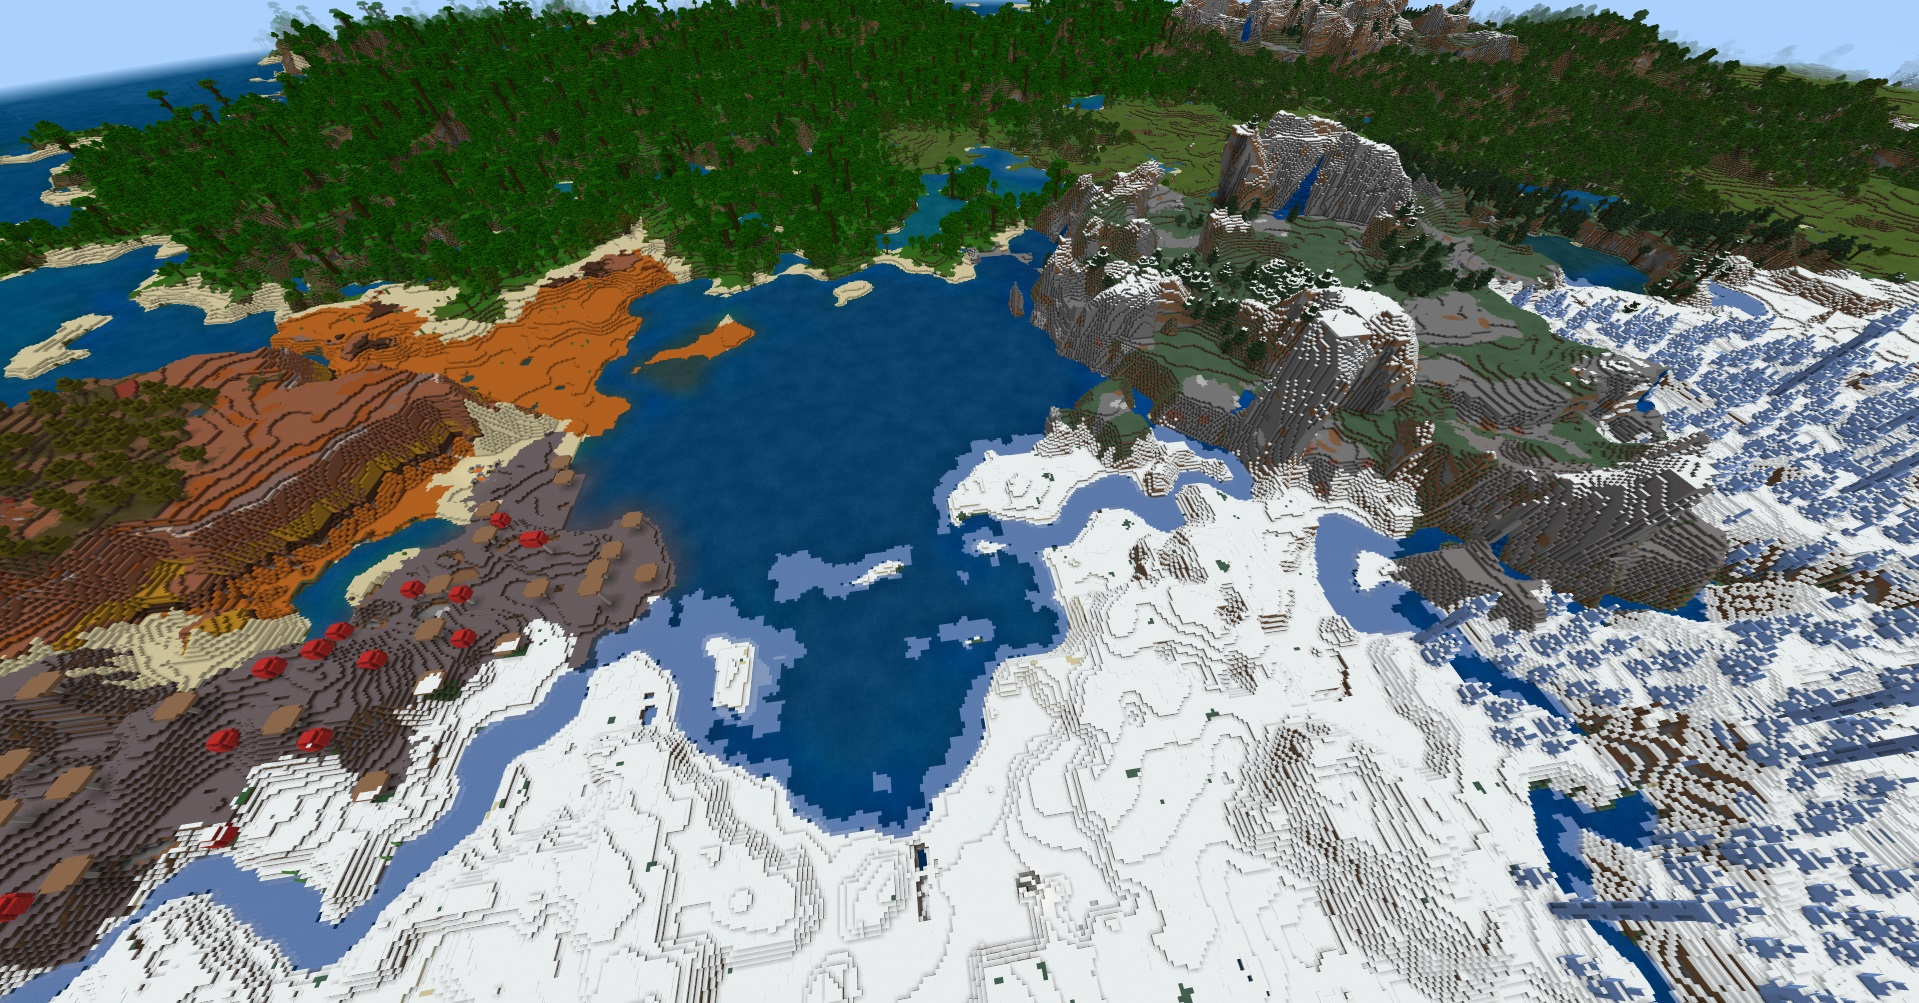 Minecraft Bedrock Pocket Edition seed - An overhead view of a tiny ocean surrounded by a mushroom biome, ice spikes, a jungle, badlands, tundra, mountains, and more